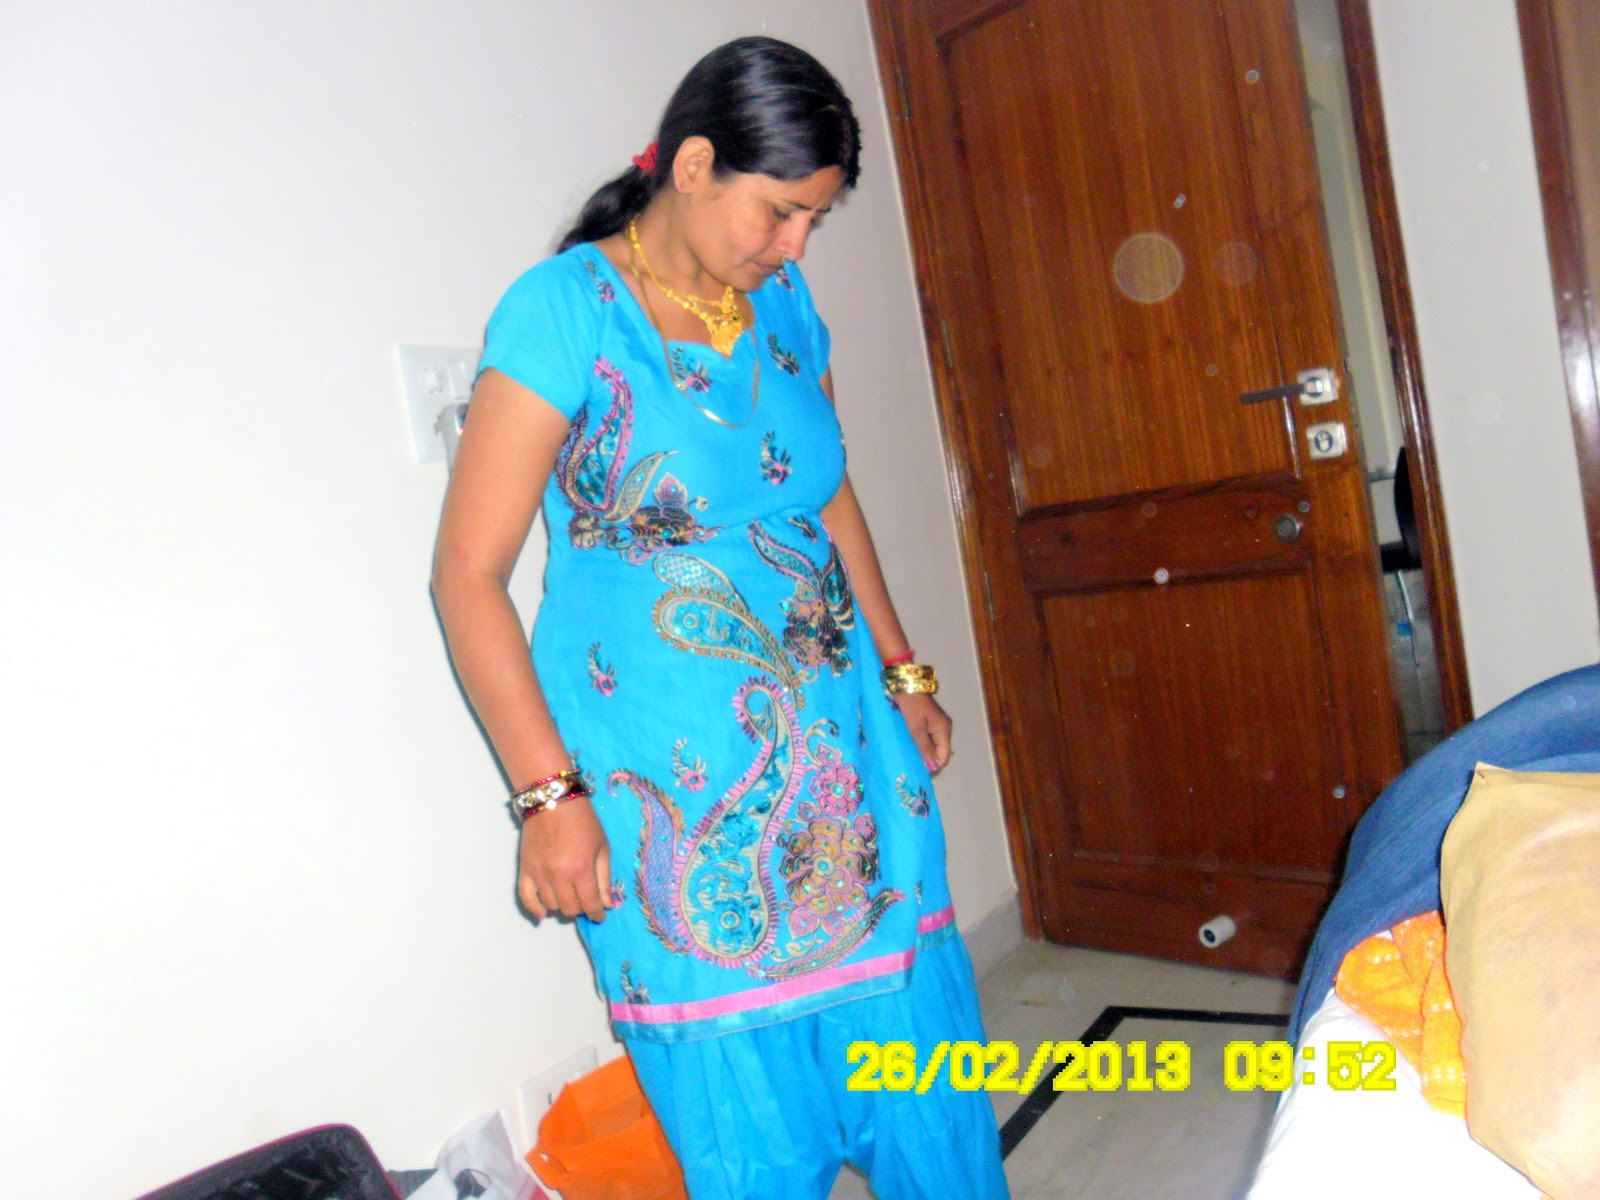 Desi wife changing her dresssexy young wife PhotosPhotos